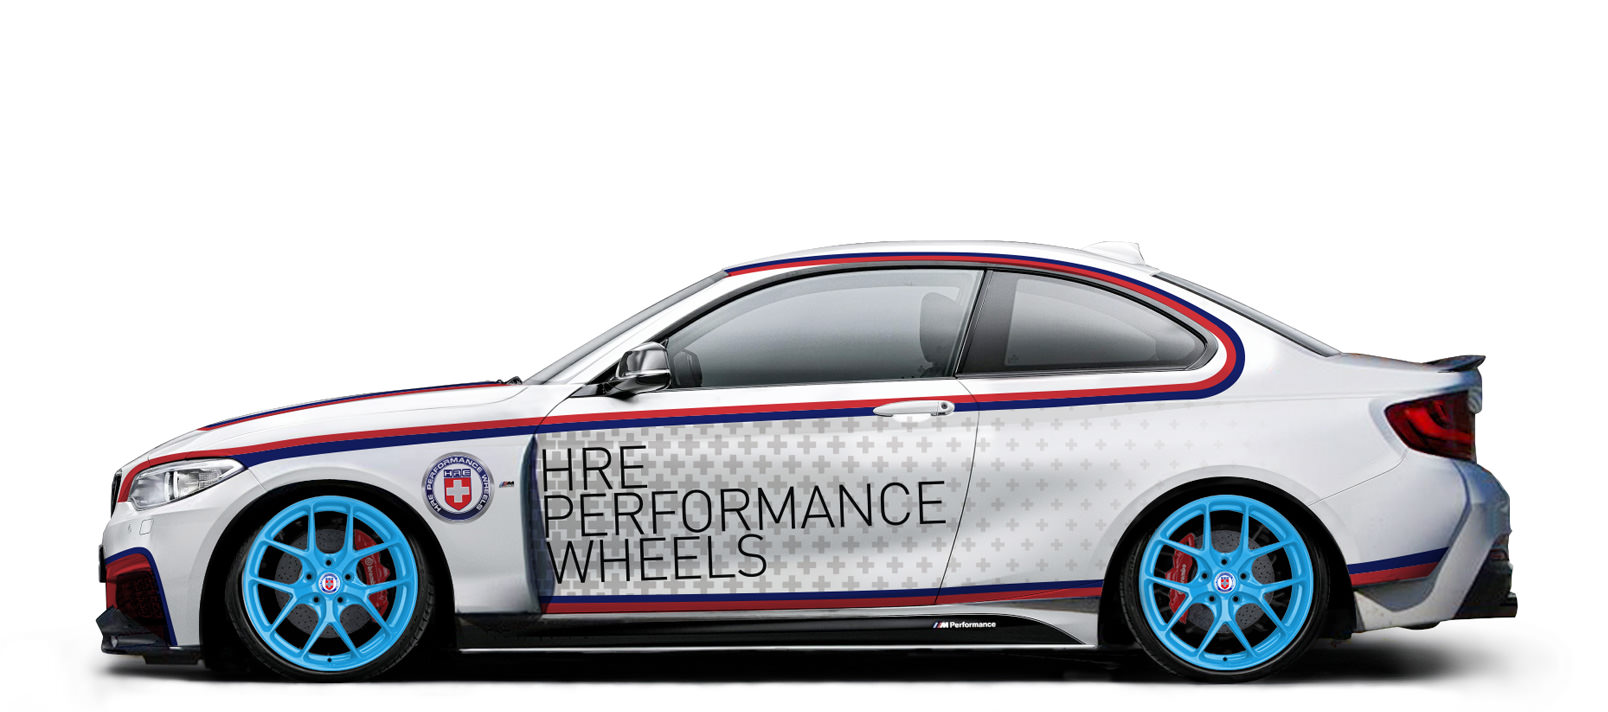 HRE-235Cup